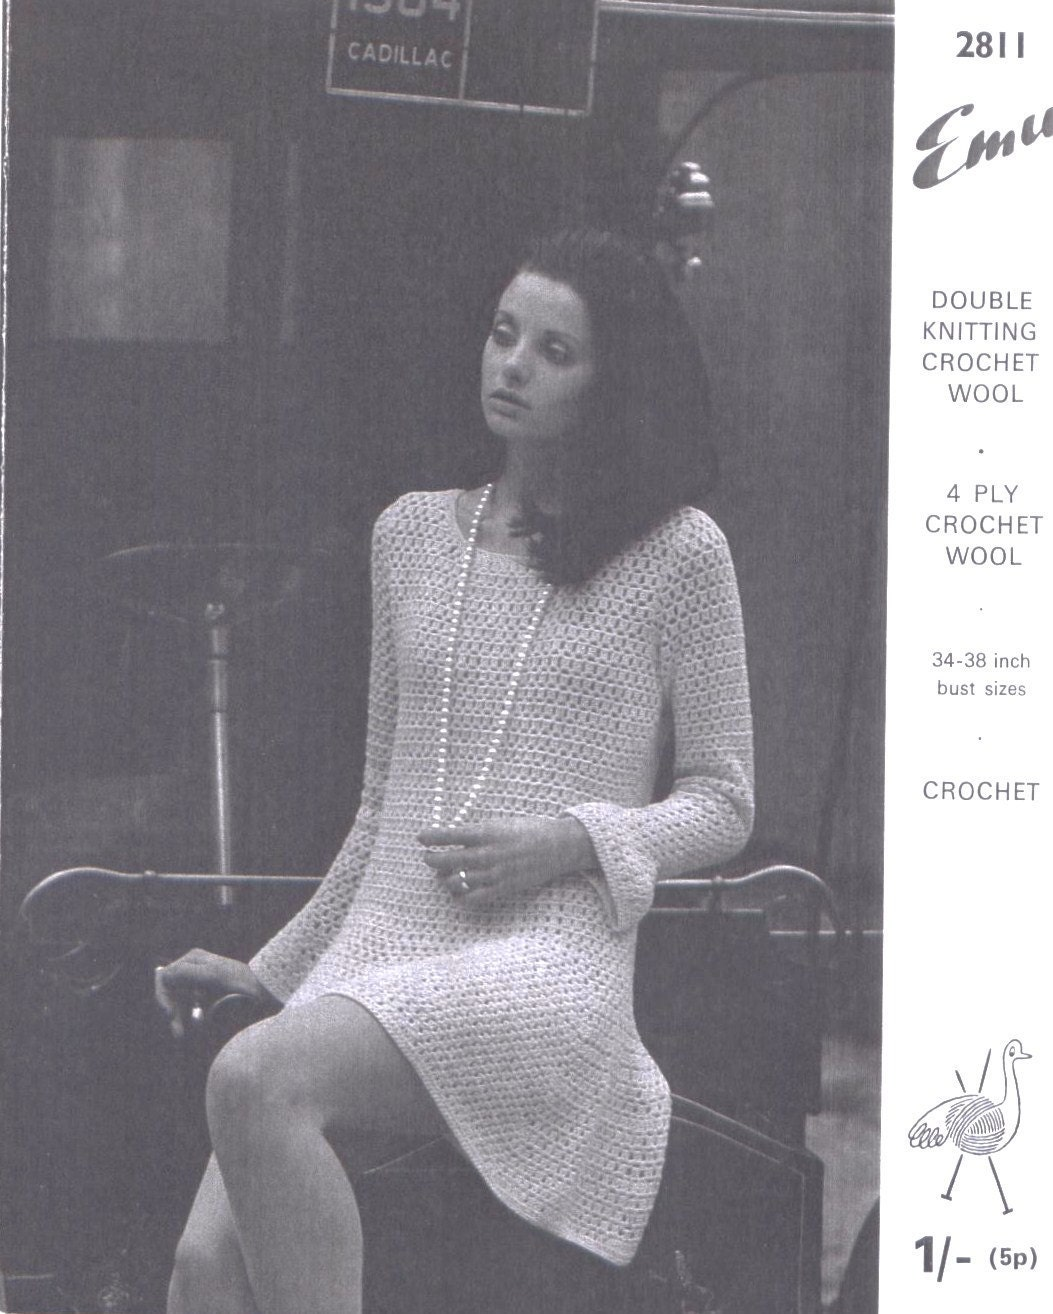 Crochet sweater and scarf patterns for today's handcrafts